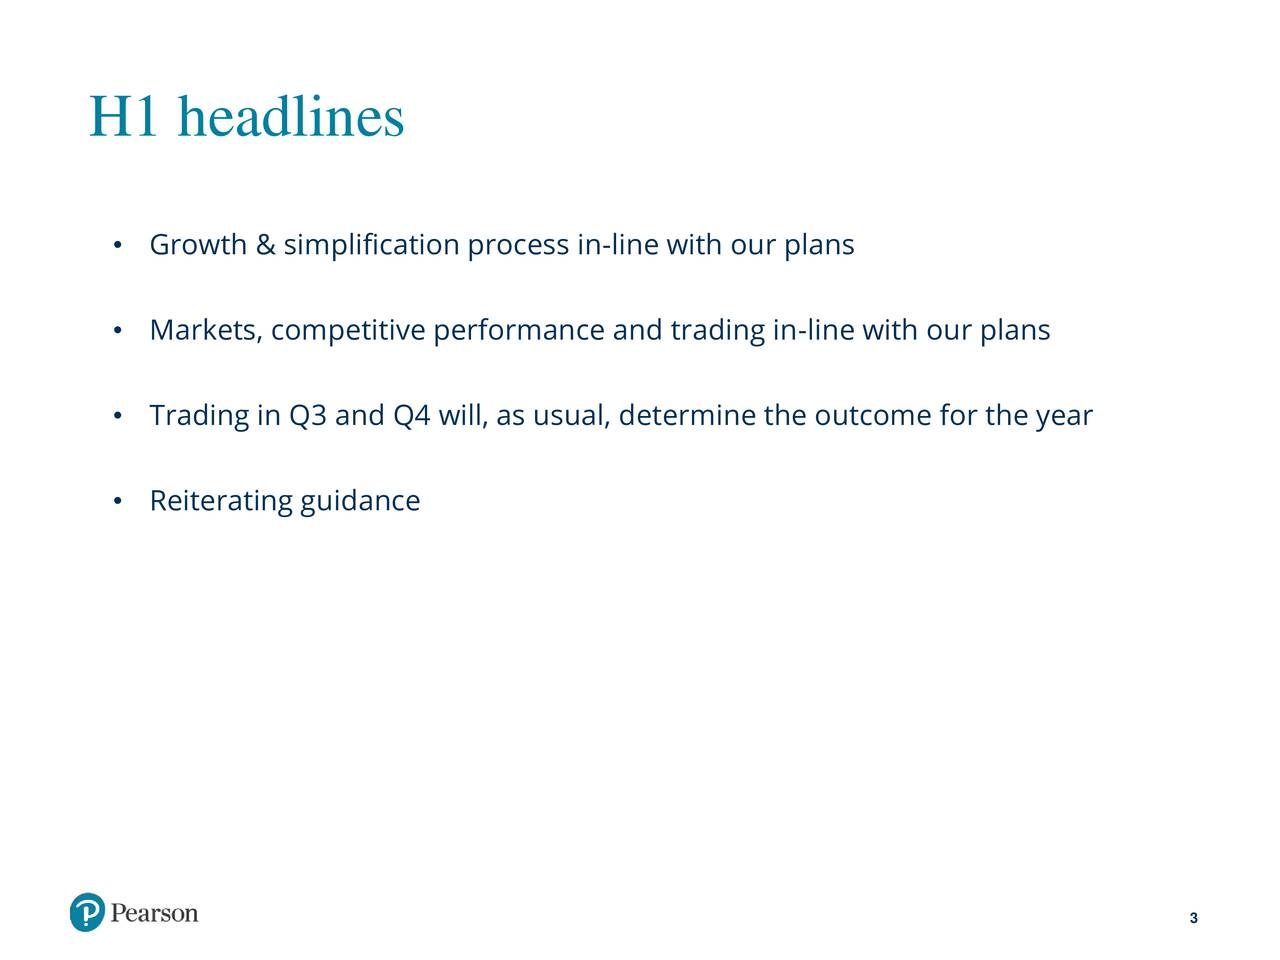 Growth & simplification process in-line with our plans Markets, competitive performance and trading in-line with our plans Trading in Q3 and Q4 will, as usual, determine the outcome for the year Reiterating guidance 3